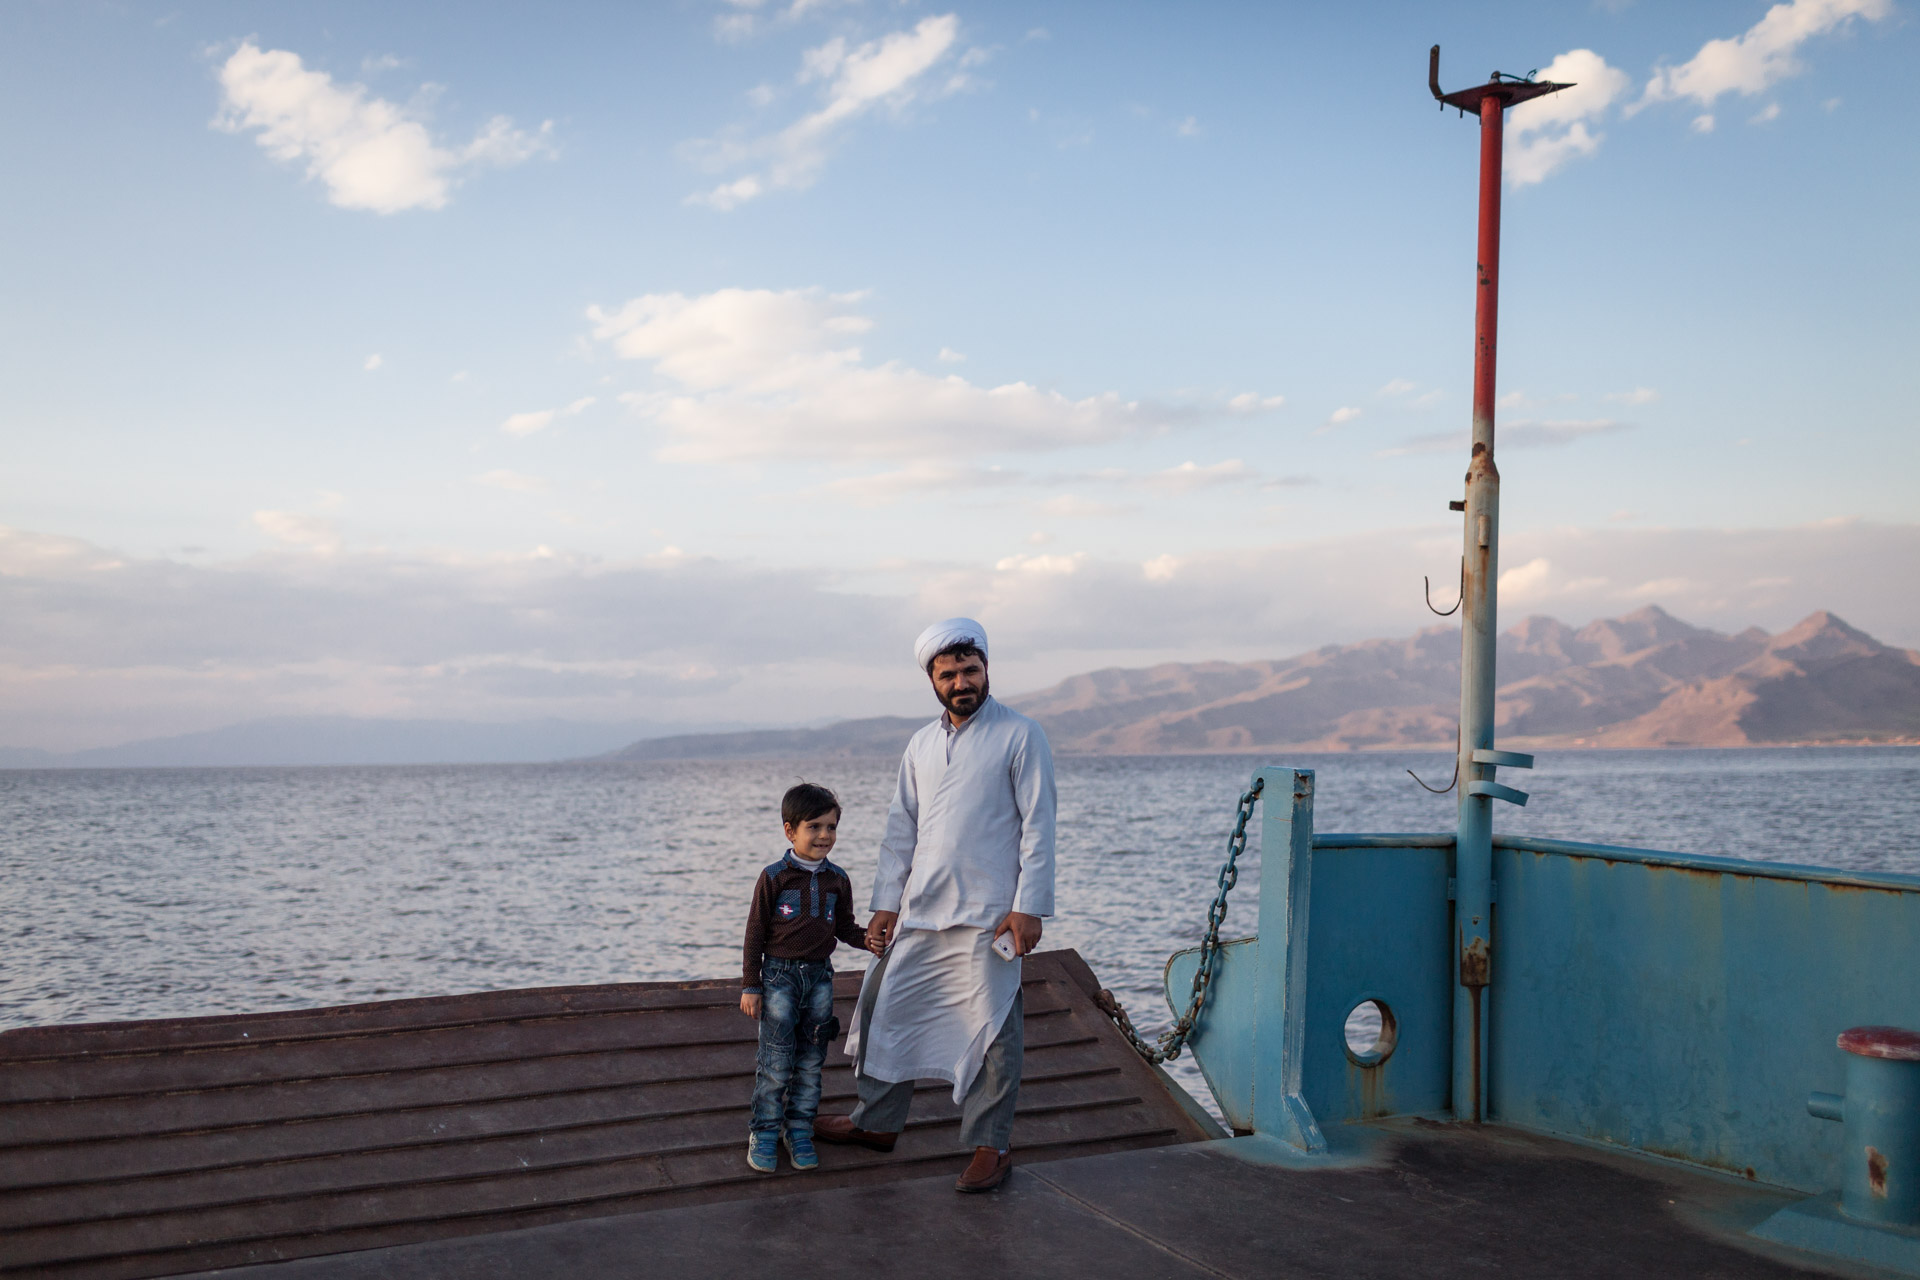 A mullah (a religious clergyman) and his son have their photo taken on the old ferry.